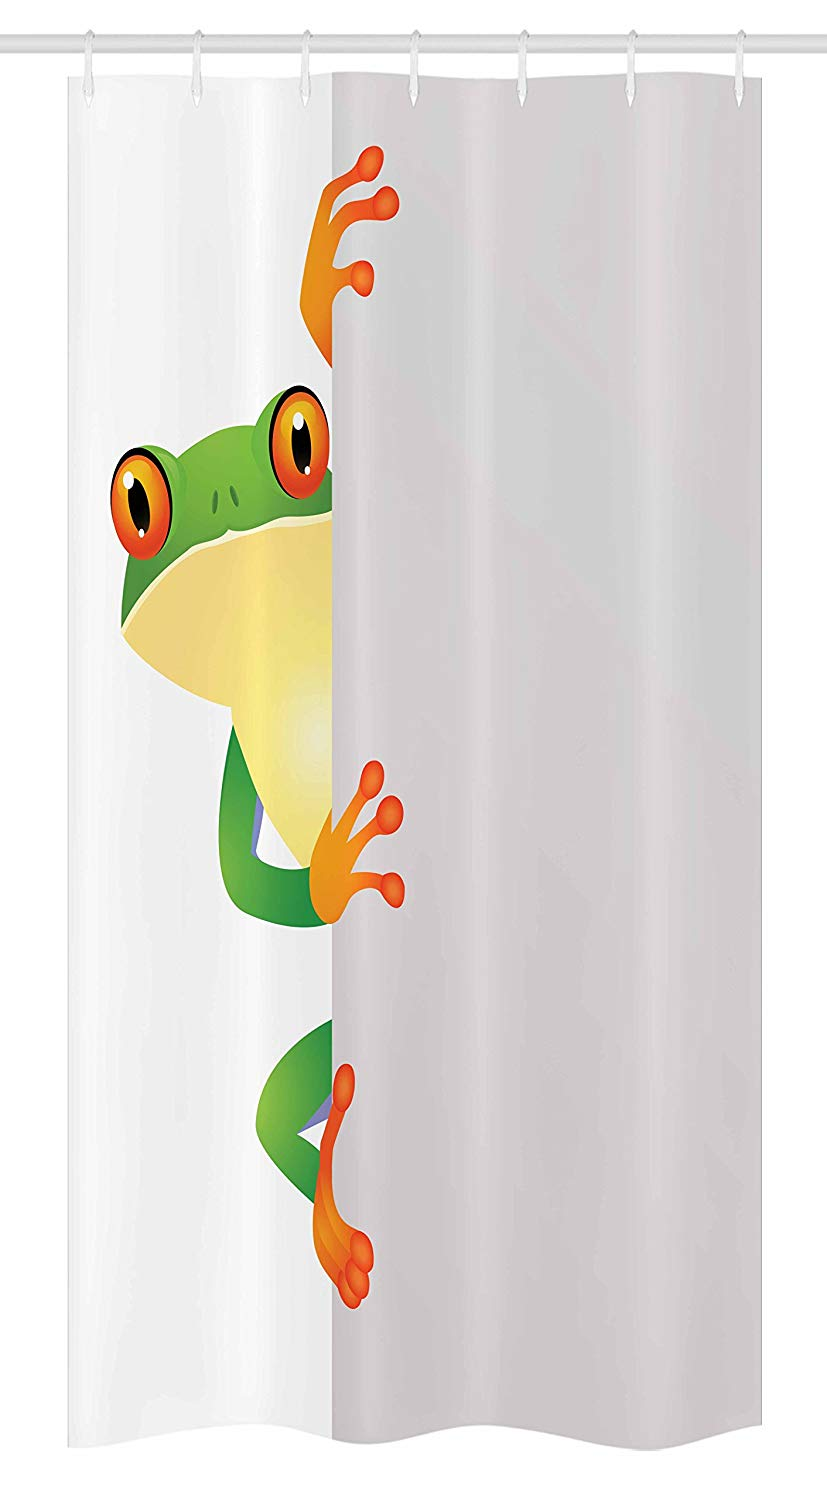 "Ambesonne Reptile Stall Shower Curtain, Funky Frog Prince with Big Eyes on Wall Camouflage Nursery Reptiles Theme, Fabric Bathroom Decor Set with Hooks, 36"" X 72"", Yellow Green"